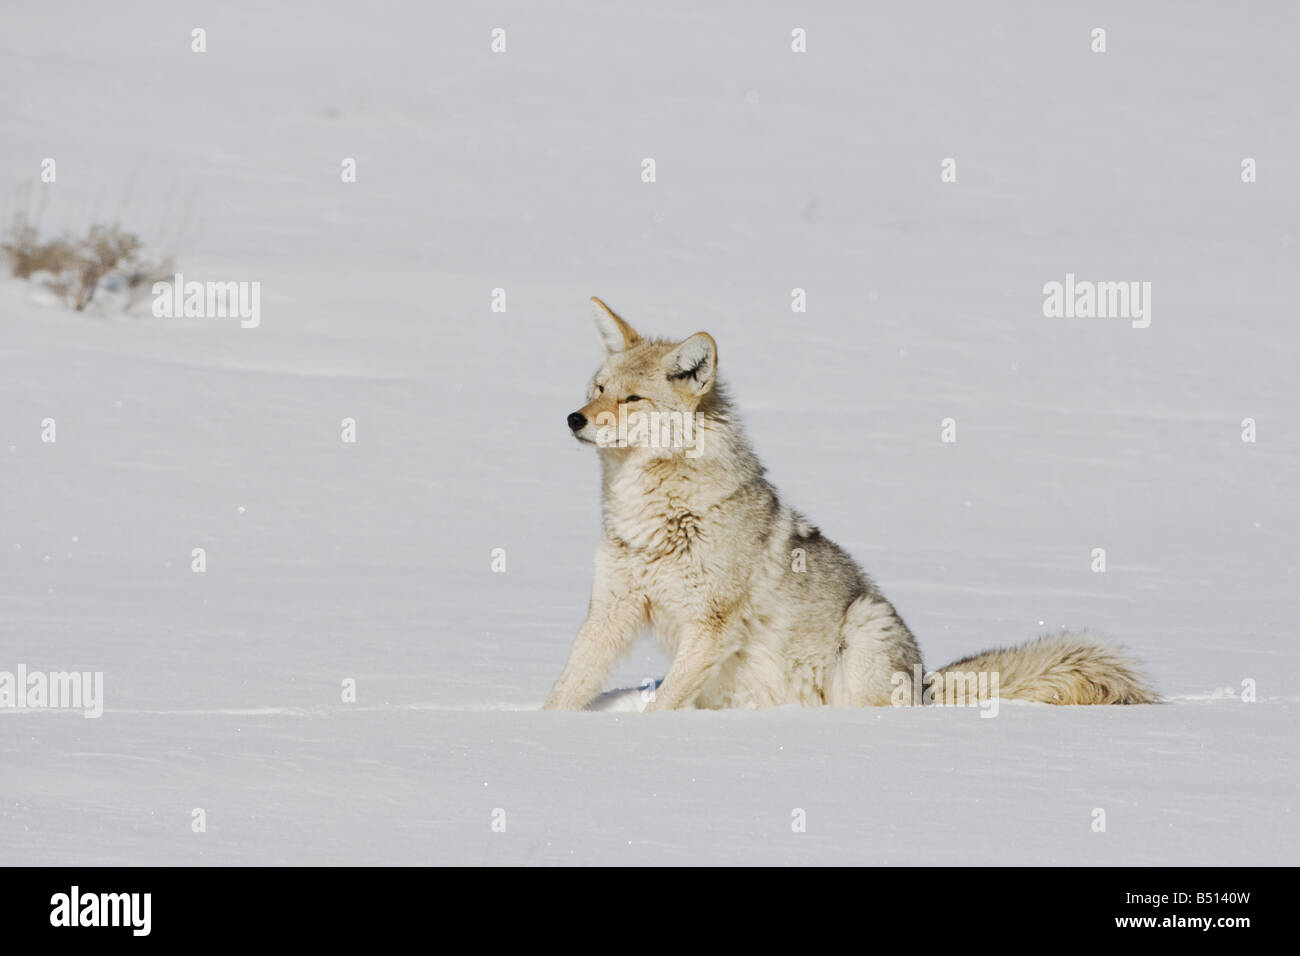 Coyote Canis latrans adult in snow Yellowstone National Park Wyoming USA - Stock Image